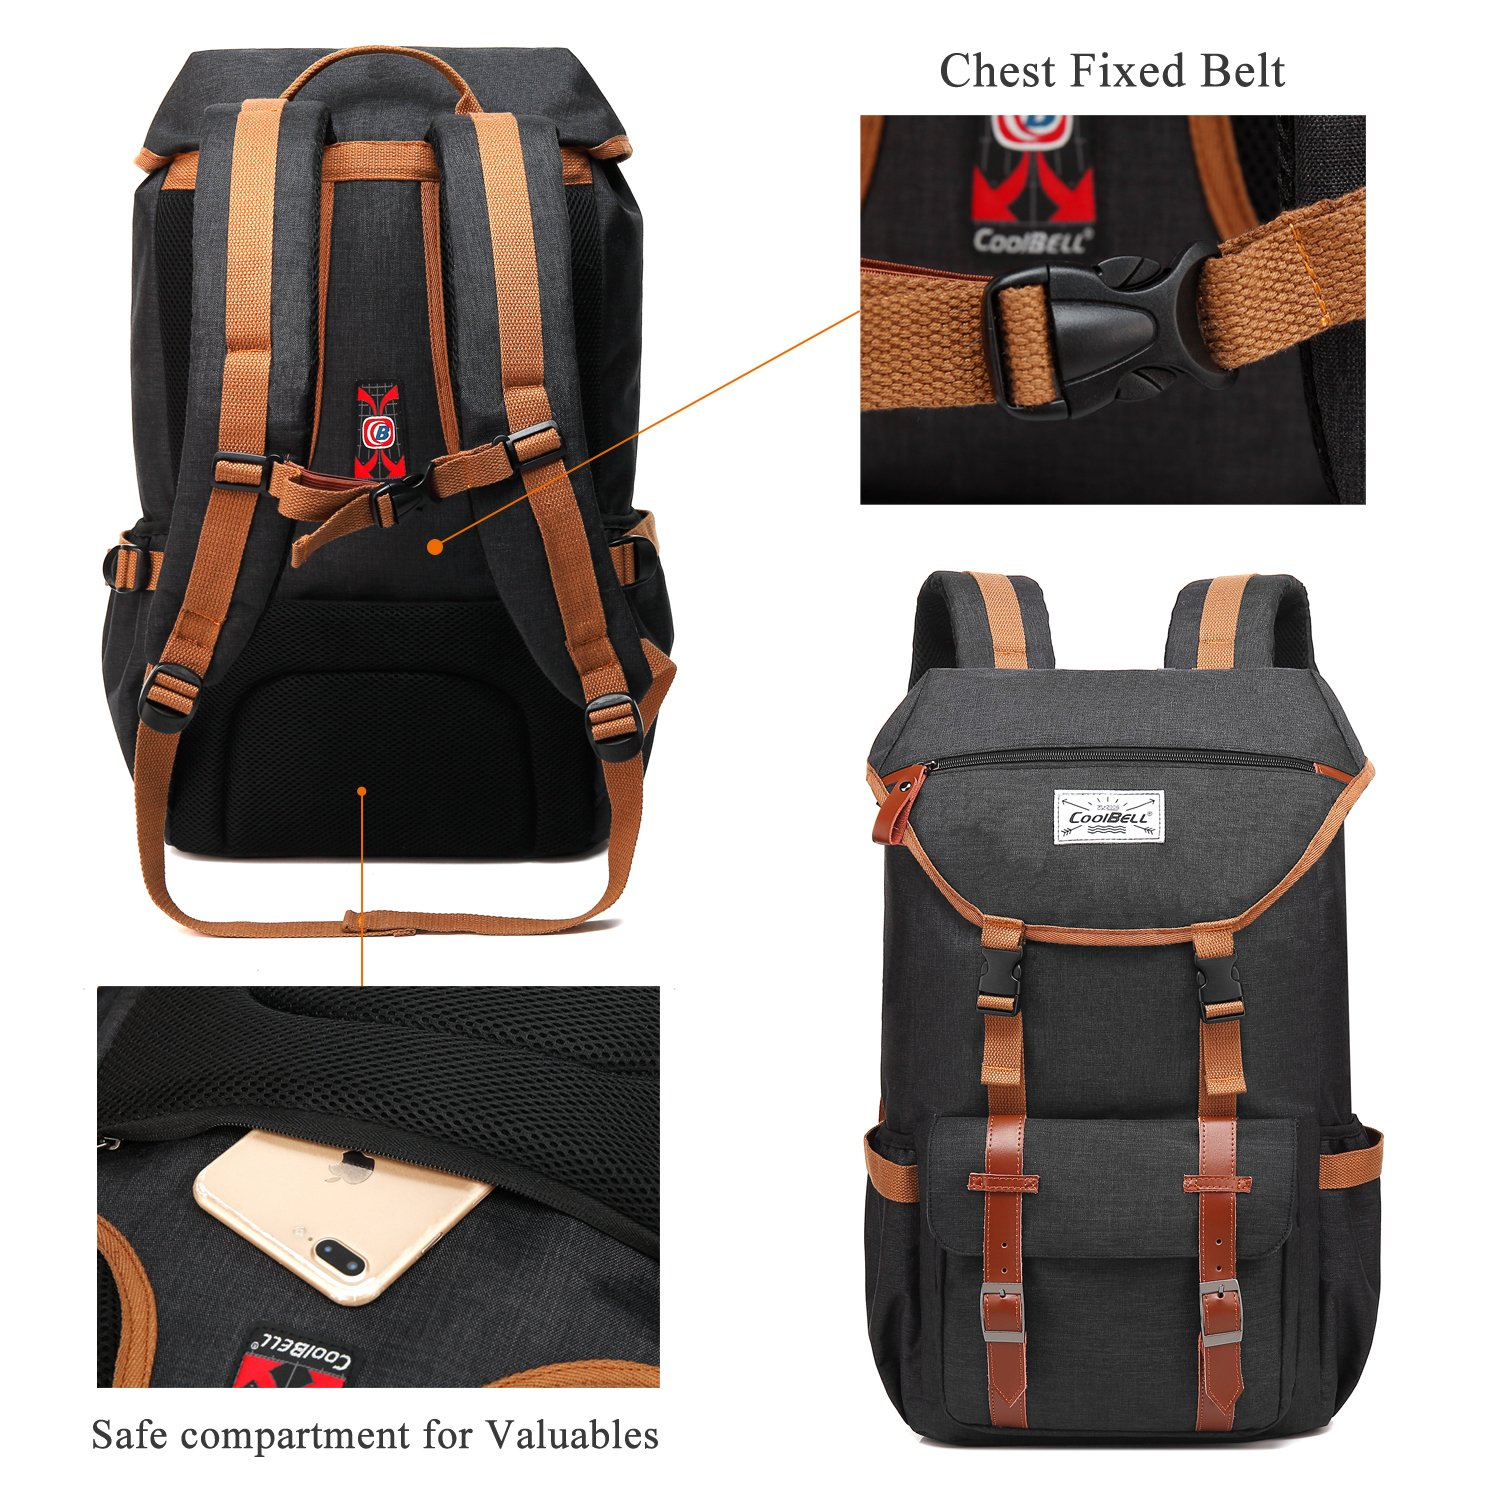 Travel Backpack CoolBELL 17.3 Inches Laptop Backpack Leisure Outdoor Rucksack Hiking Knapsack School Daypack Multi-functional Business Bag For School/College/Men/Women (38L, Black) by CoolBELL (Image #6)